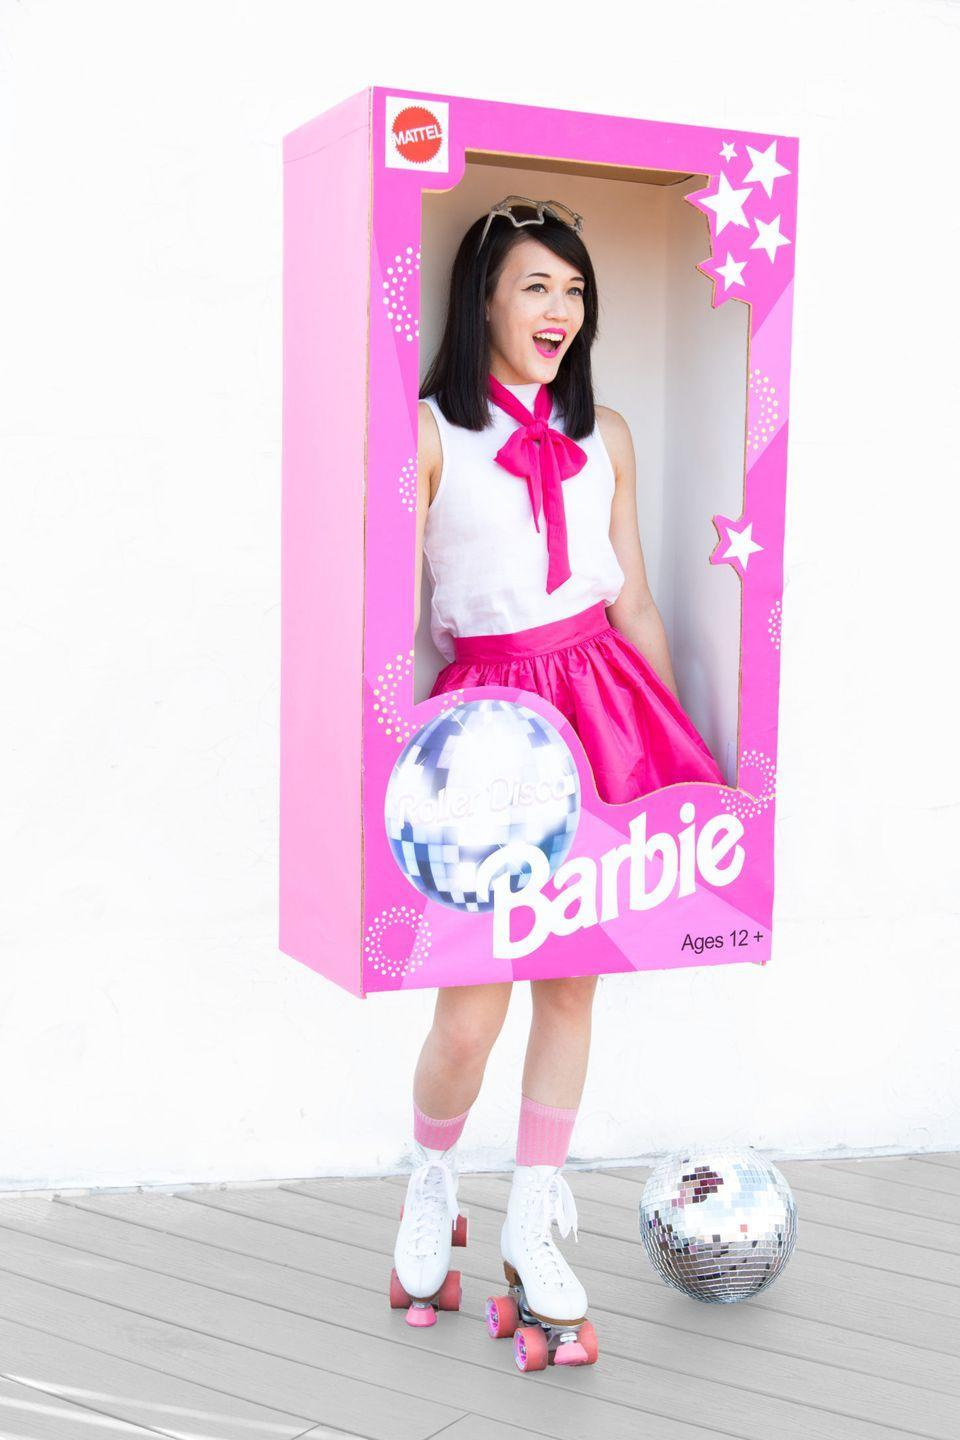 """<p>Your teen will want to roll with this ultra-cute and clever costume whether or not she's still got her favorite Barbies tucked away somewhere. The project even comes with a Roller Disco Barbie box print-out to make the costume easy to assemble.</p><p><strong>Get the tutorial at <a href=""""http://www.awwsam.com/2016/09/diy-roller-disco-barbie-halloween.html"""" rel=""""nofollow noopener"""" target=""""_blank"""" data-ylk=""""slk:Aww Sam"""" class=""""link rapid-noclick-resp"""">Aww Sam</a>.</strong> </p><p><a class=""""link rapid-noclick-resp"""" href=""""https://www.amazon.com/Savage-Widetone-Seamless-Background-Paper/dp/B000AD4LMU/ref=sr_1_15?tag=syn-yahoo-20&ascsubtag=%5Bartid%7C10050.g.22118522%5Bsrc%7Cyahoo-us"""" rel=""""nofollow noopener"""" target=""""_blank"""" data-ylk=""""slk:SHOP PINK WRAPPING PAPER"""">SHOP PINK WRAPPING PAPER</a></p>"""